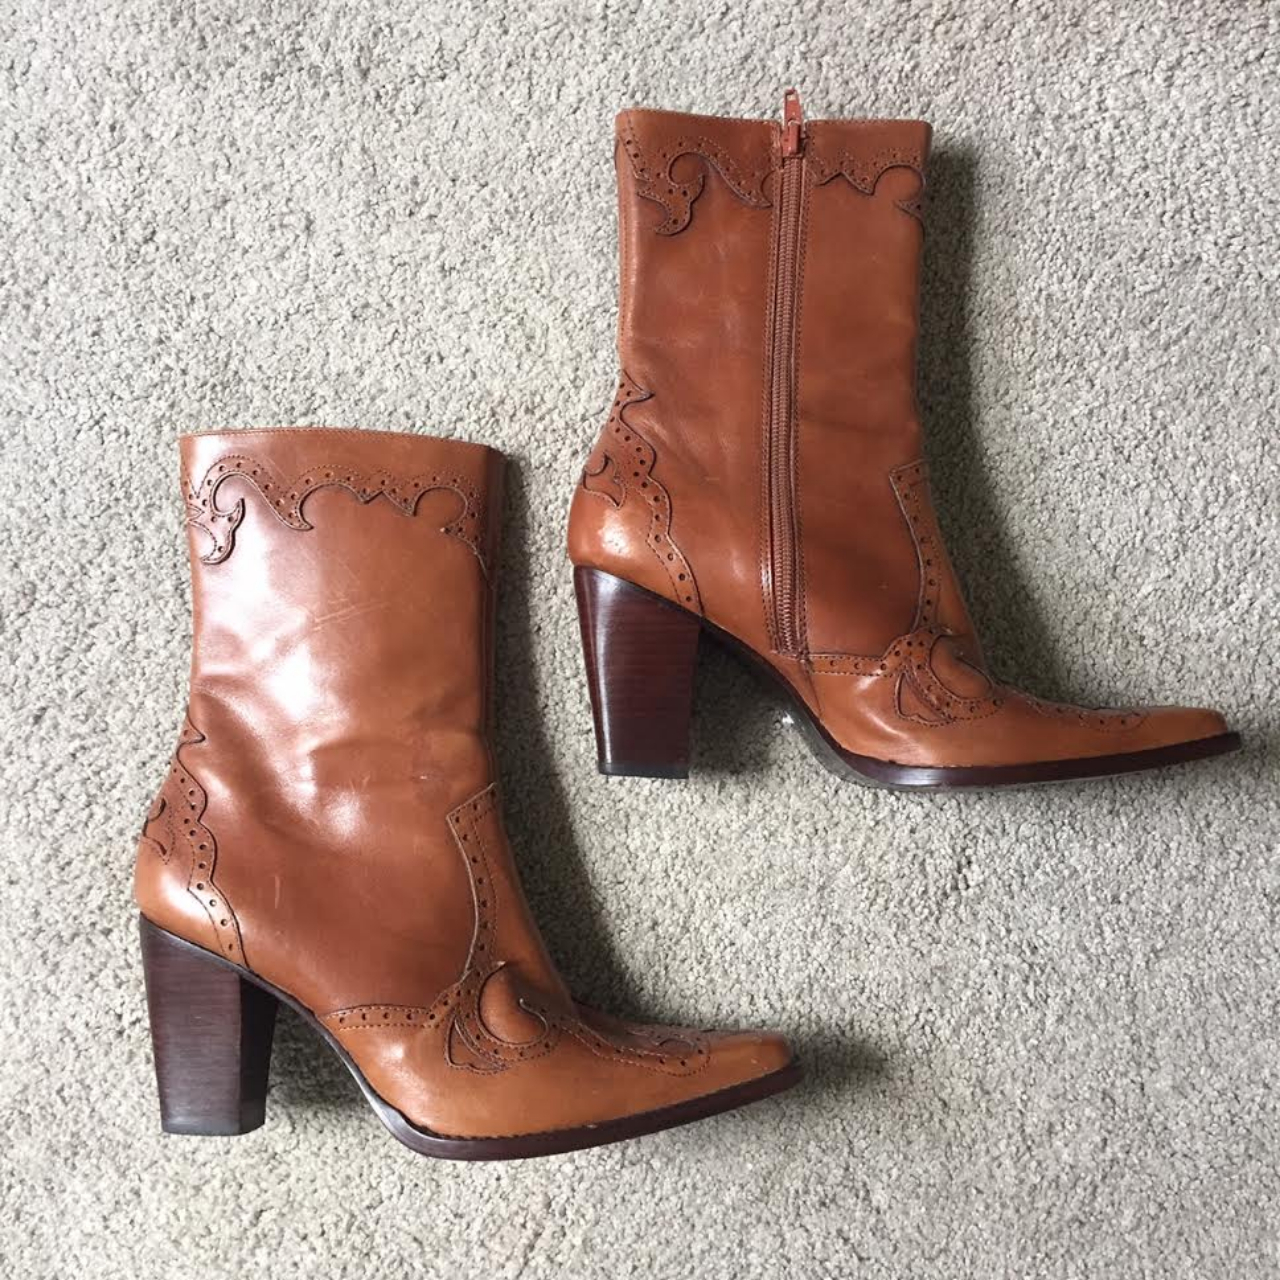 Product Image 1 - Beautiful Eddie Bauer boots with